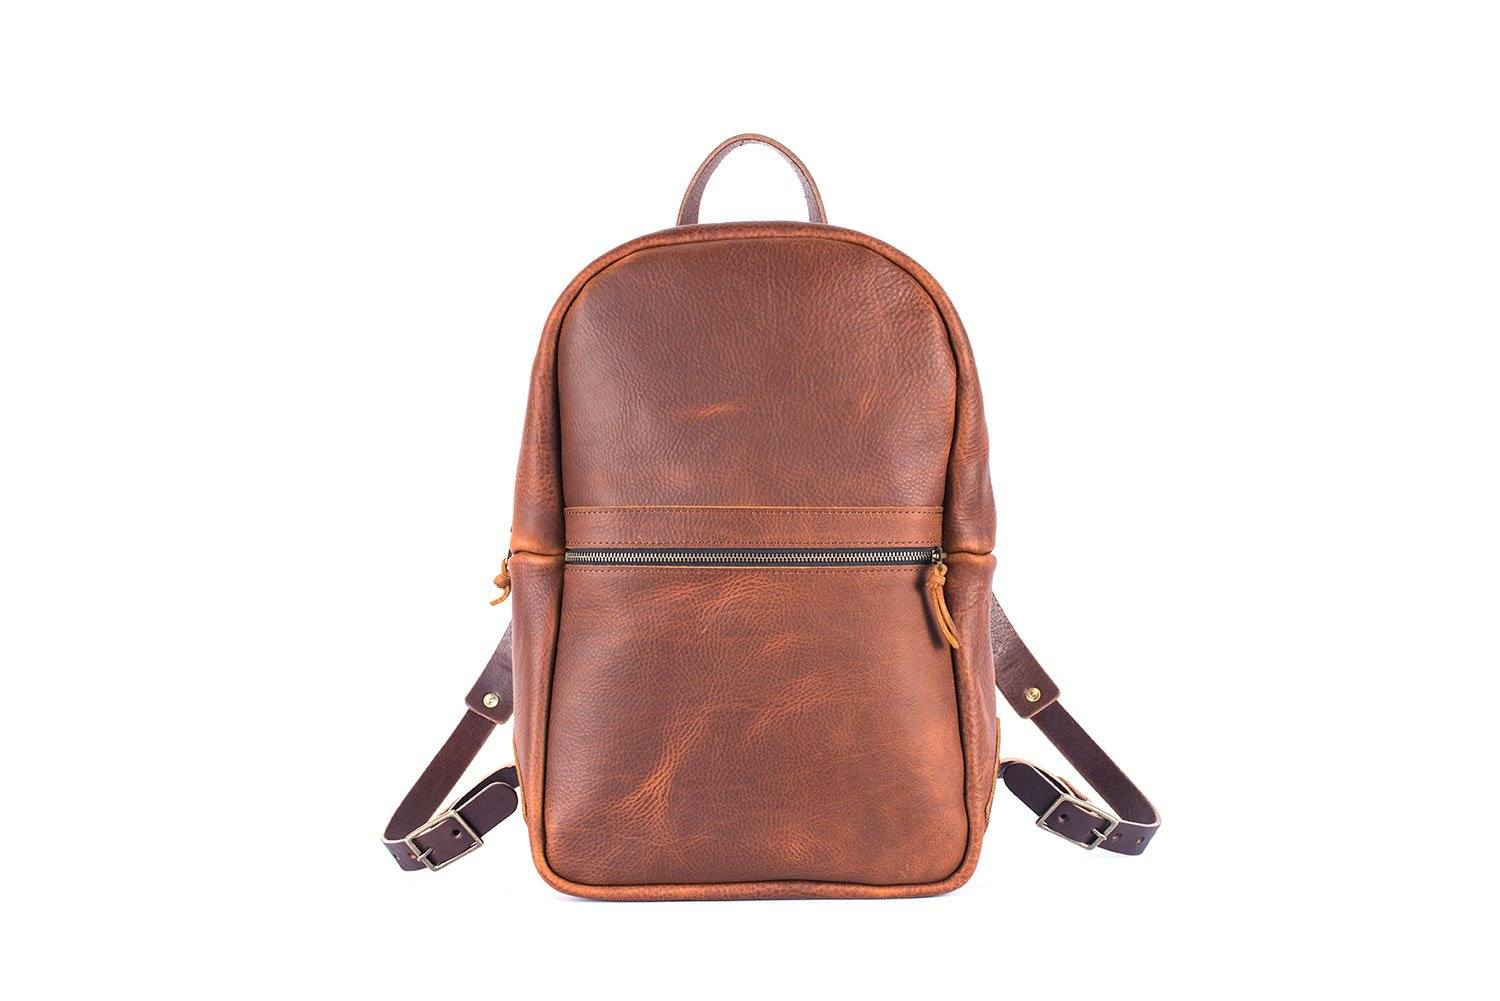 CLASSIC ZIPPERED LEATHER BACKPACK